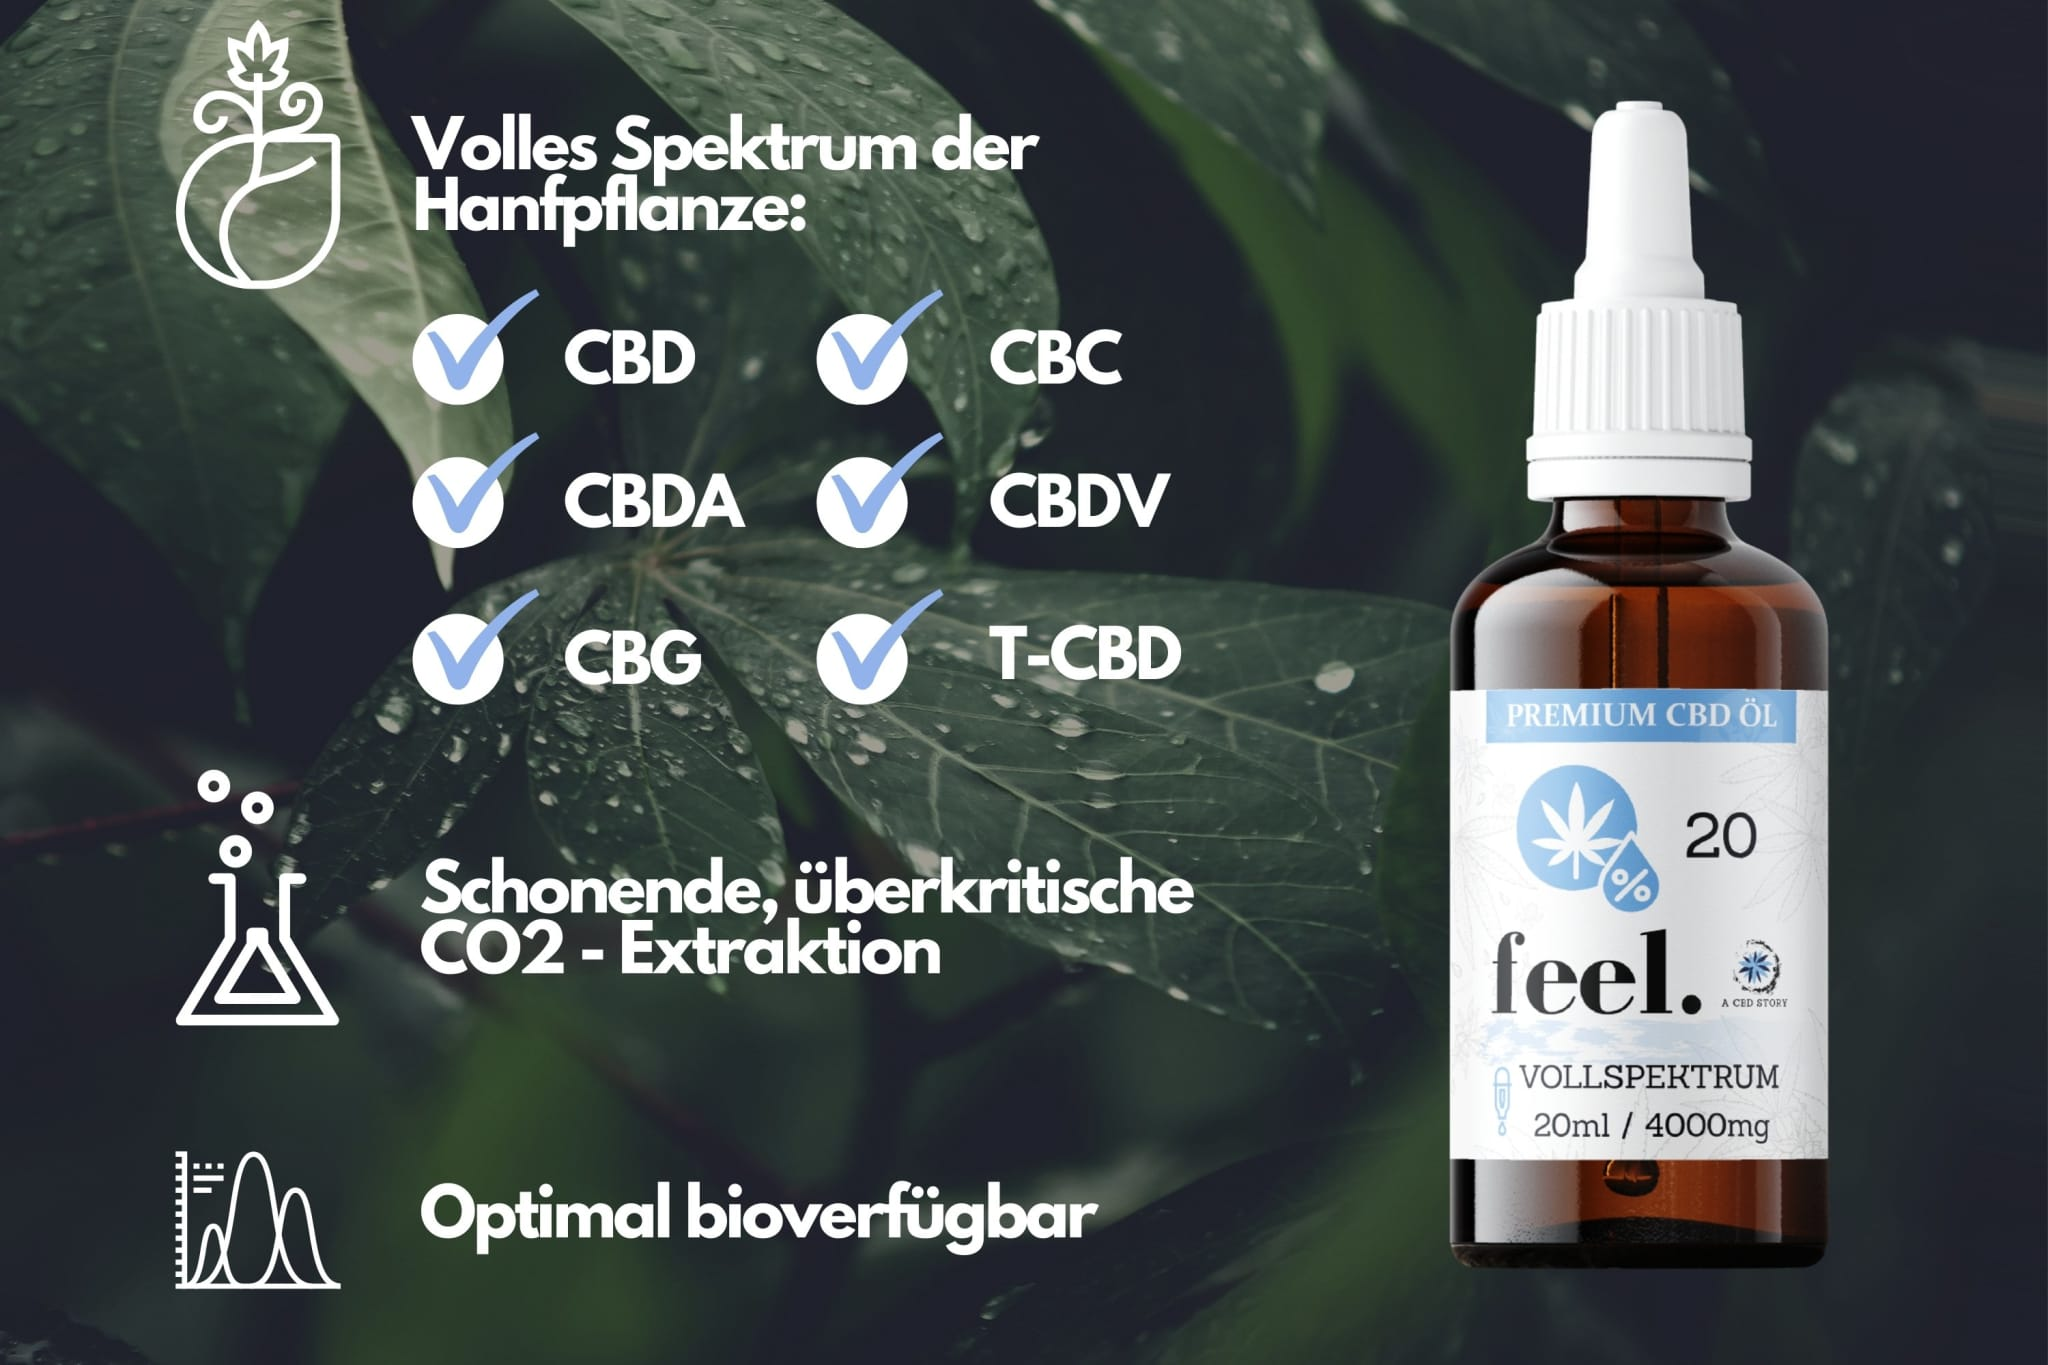 feel. Vollspektrum CBD Öl 20% - 20ml